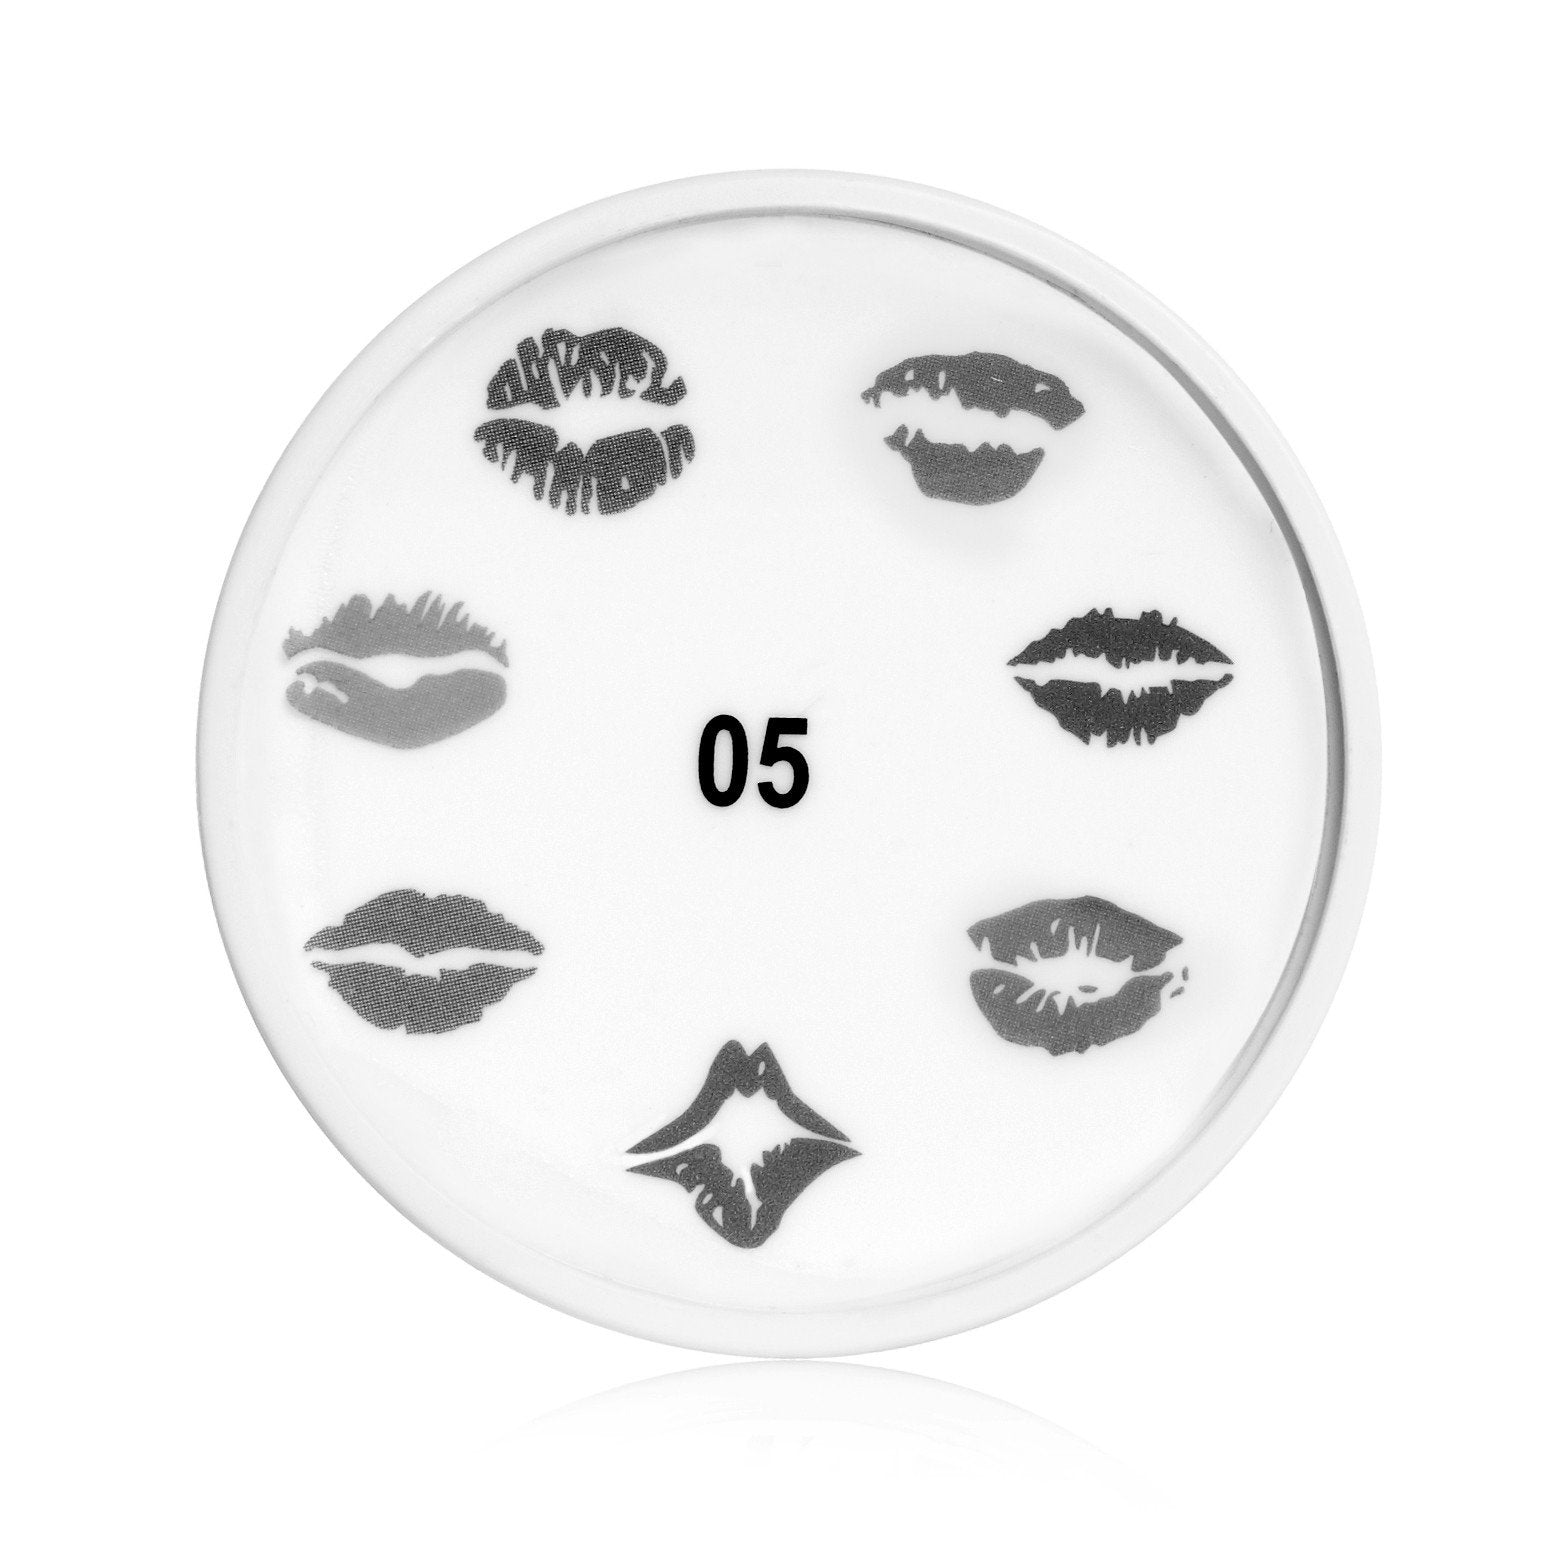 Read My lips Nail Art stamp